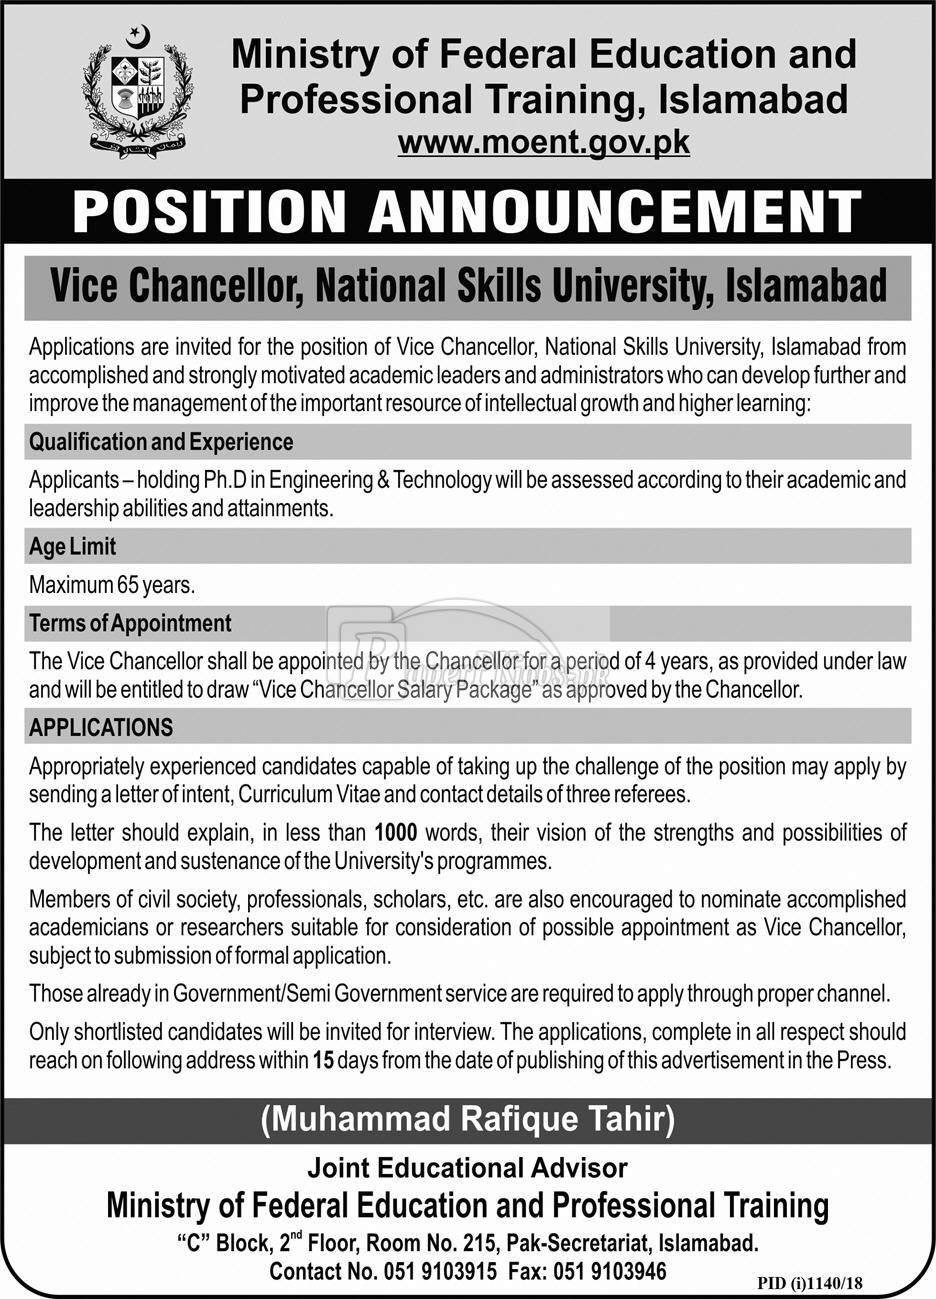 Ministry of Federal Education & Professional Training Islamabad Jobs 2018